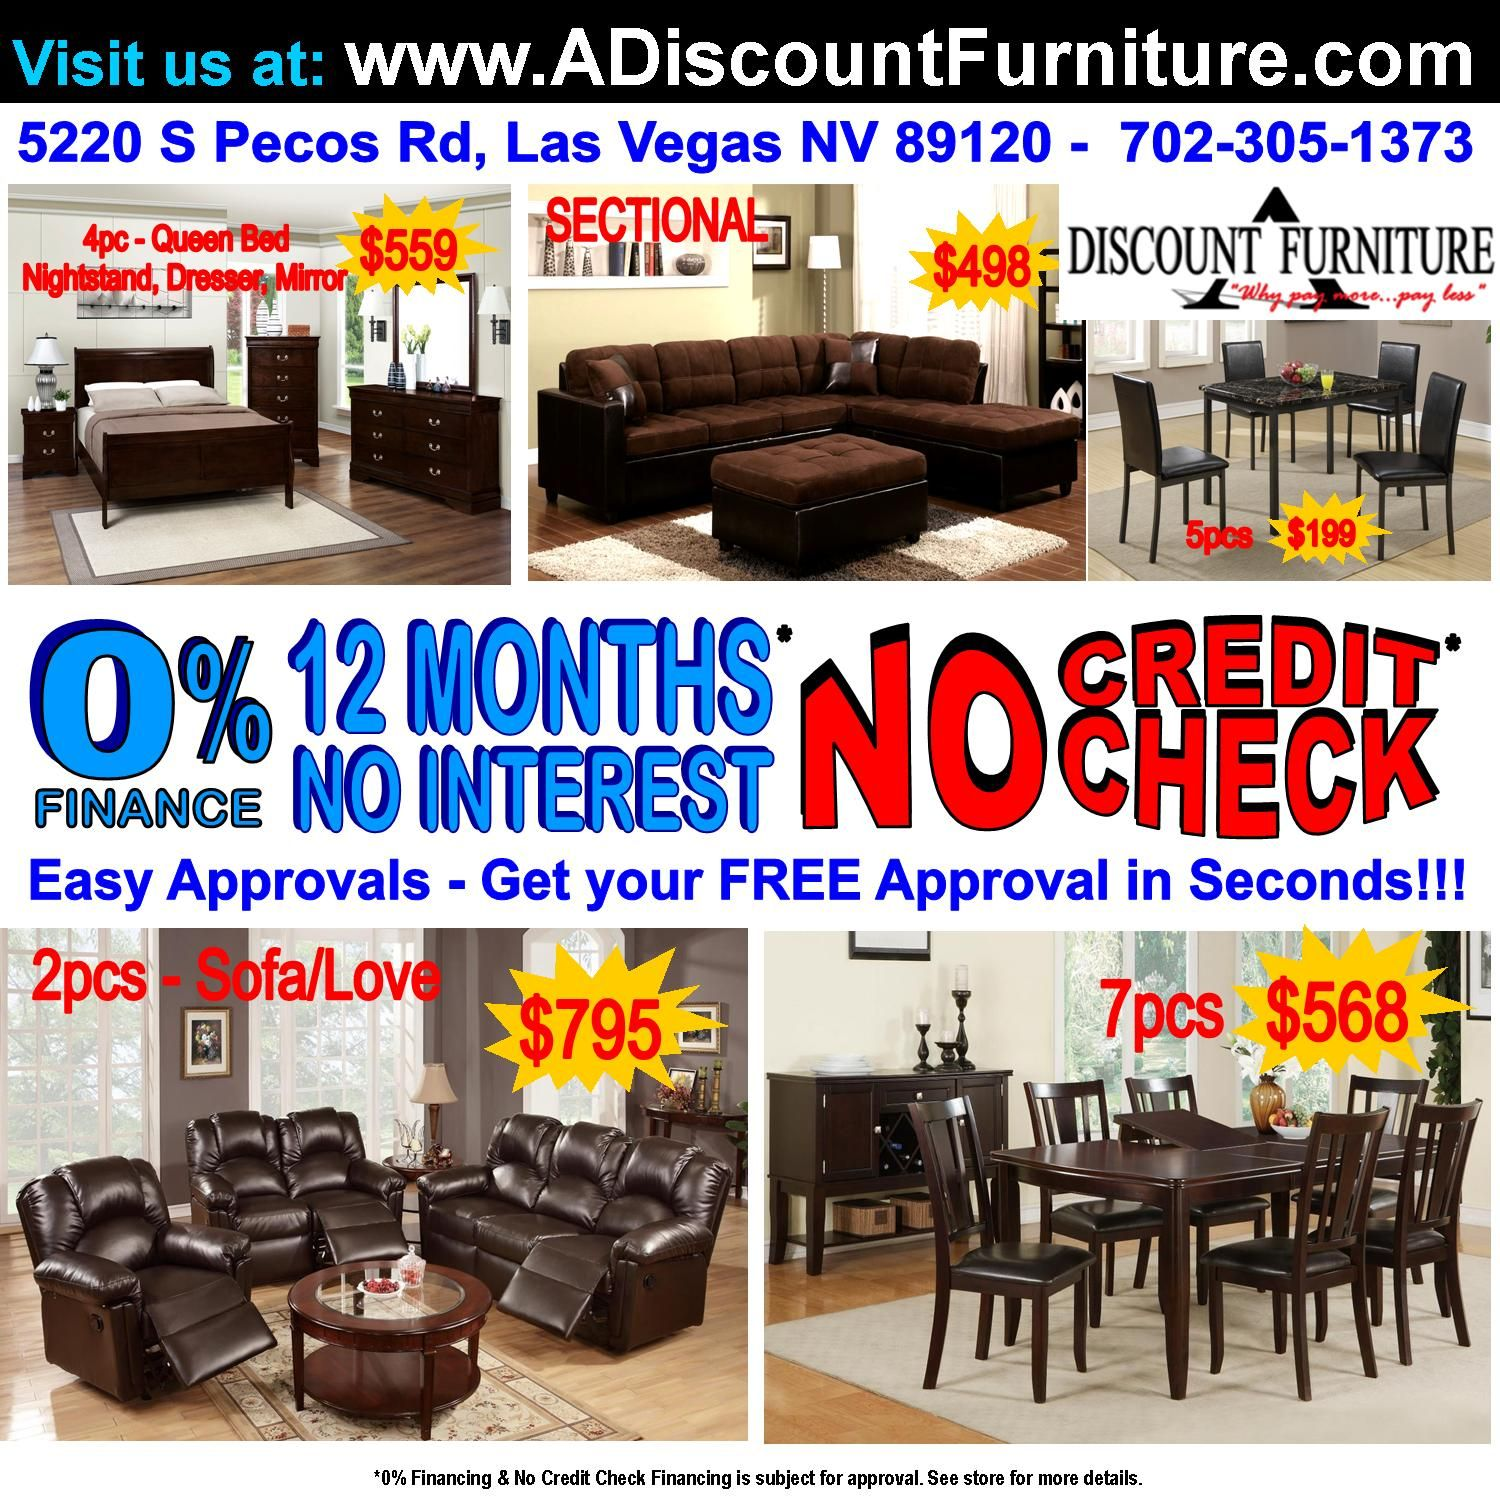 Pin By A Discount Furniture On Beautiful Affordable Furniture Affordable Furniture Discount Furniture Childrens Bedrooms